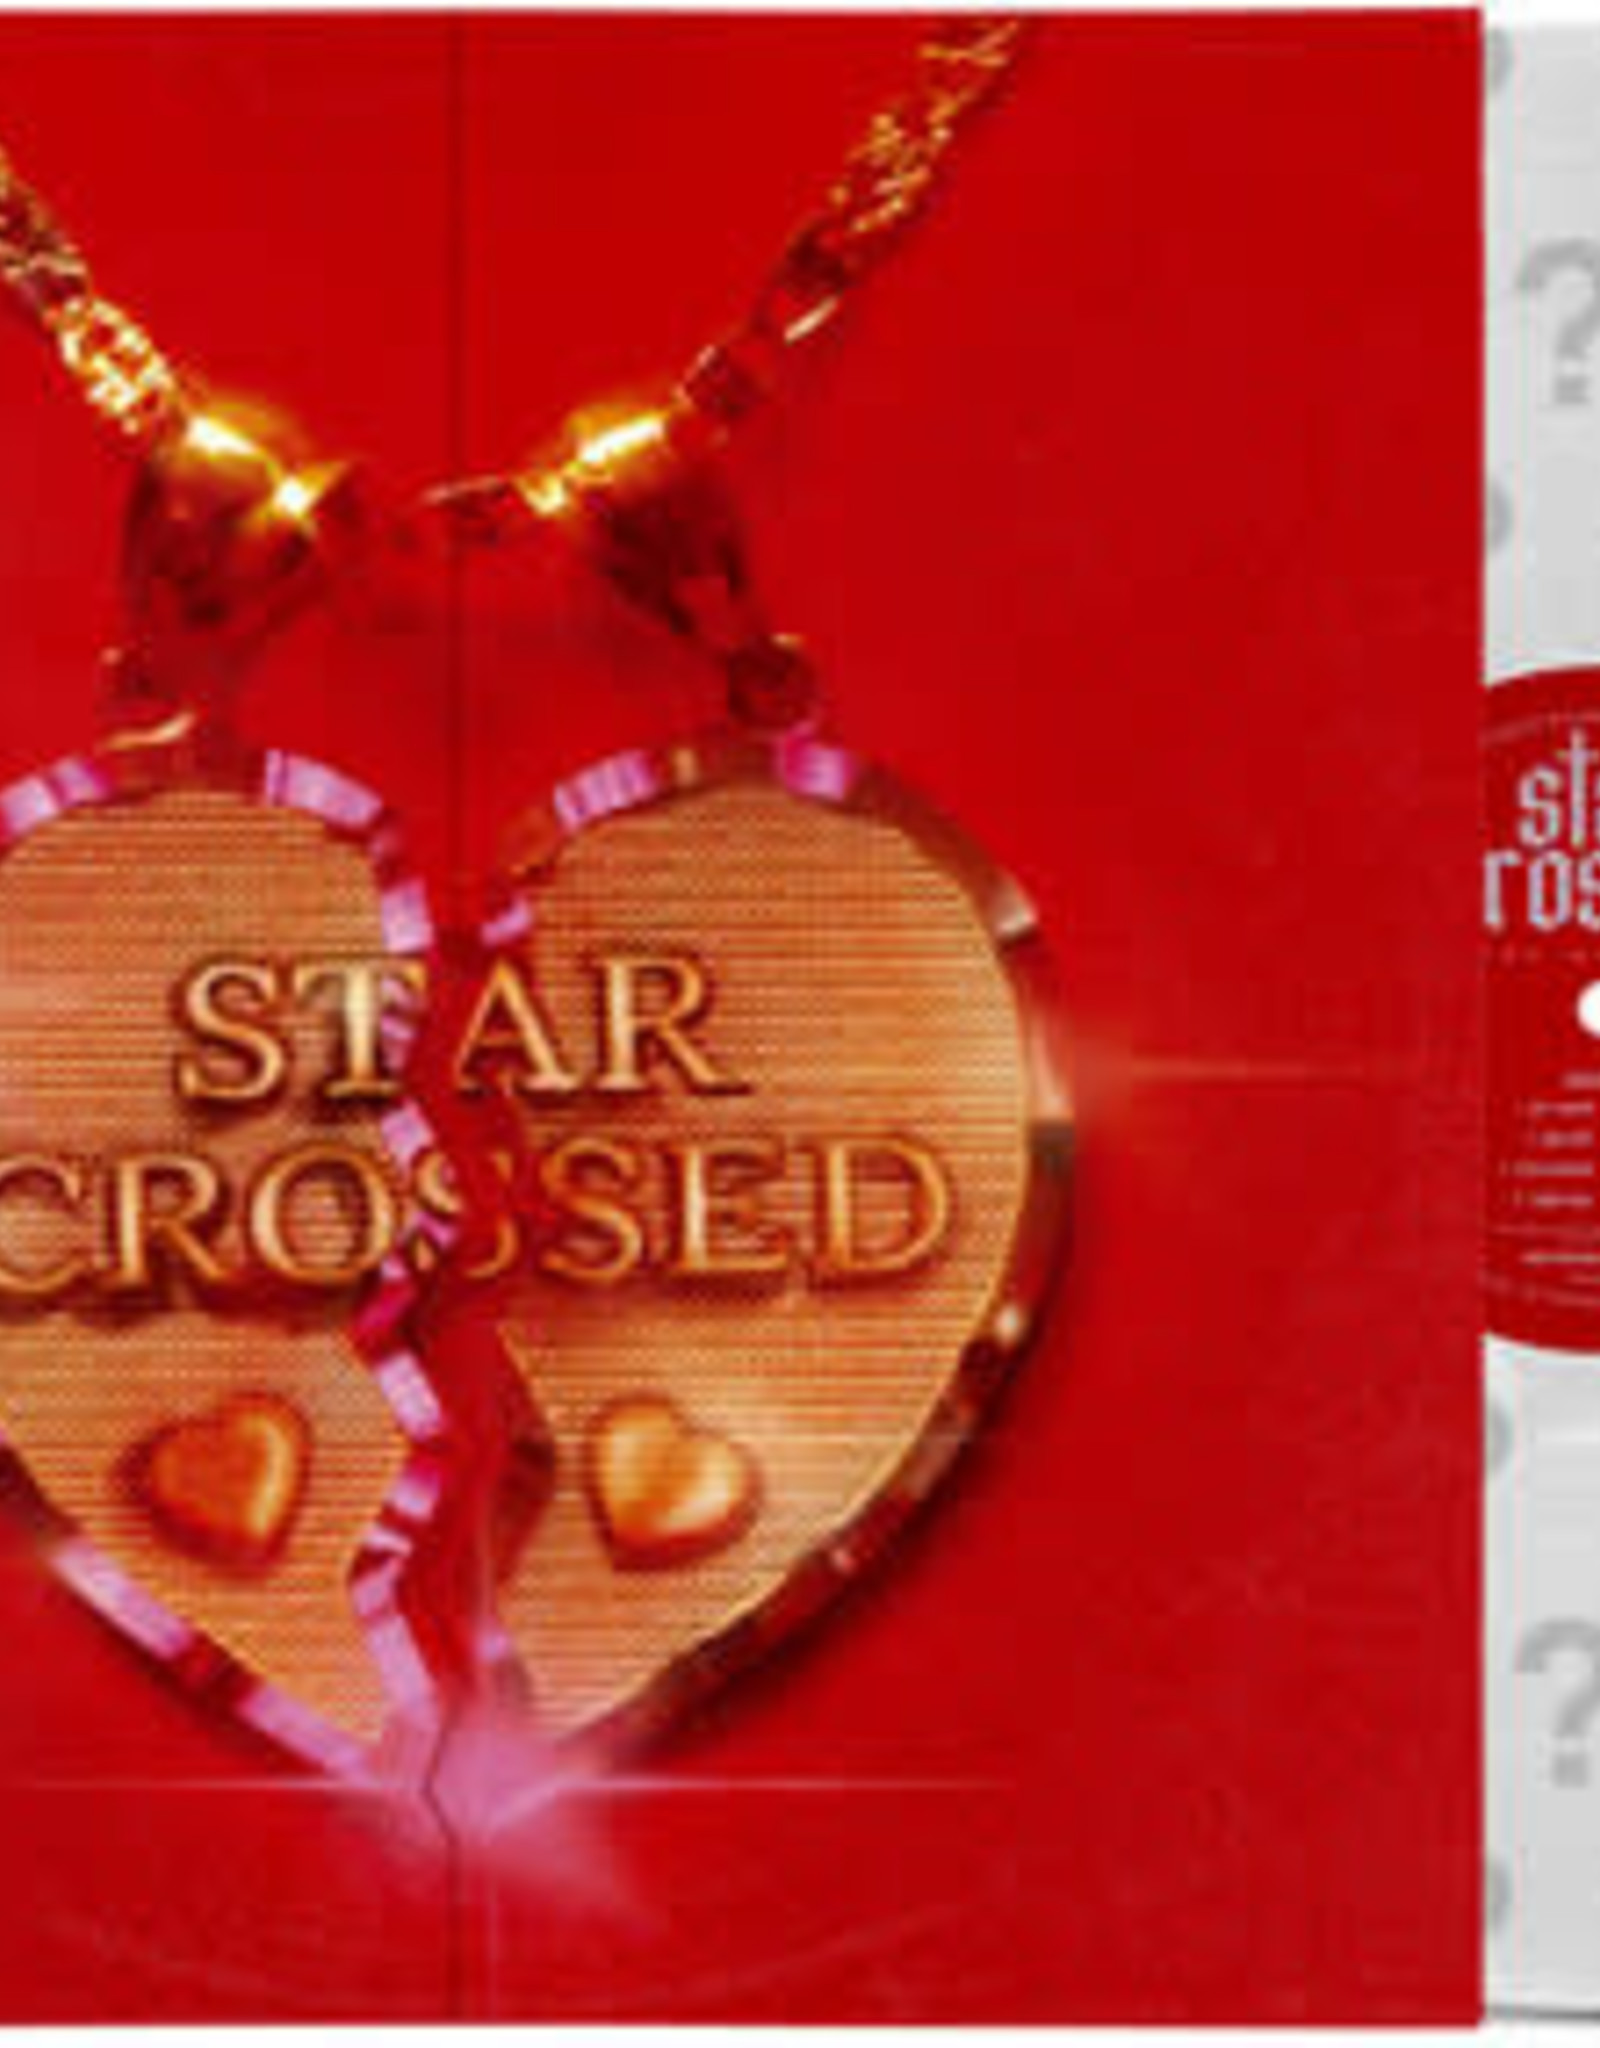 Kacey Musgraves - star-crossed (1 LP) (Surprise Color 2 of 3)